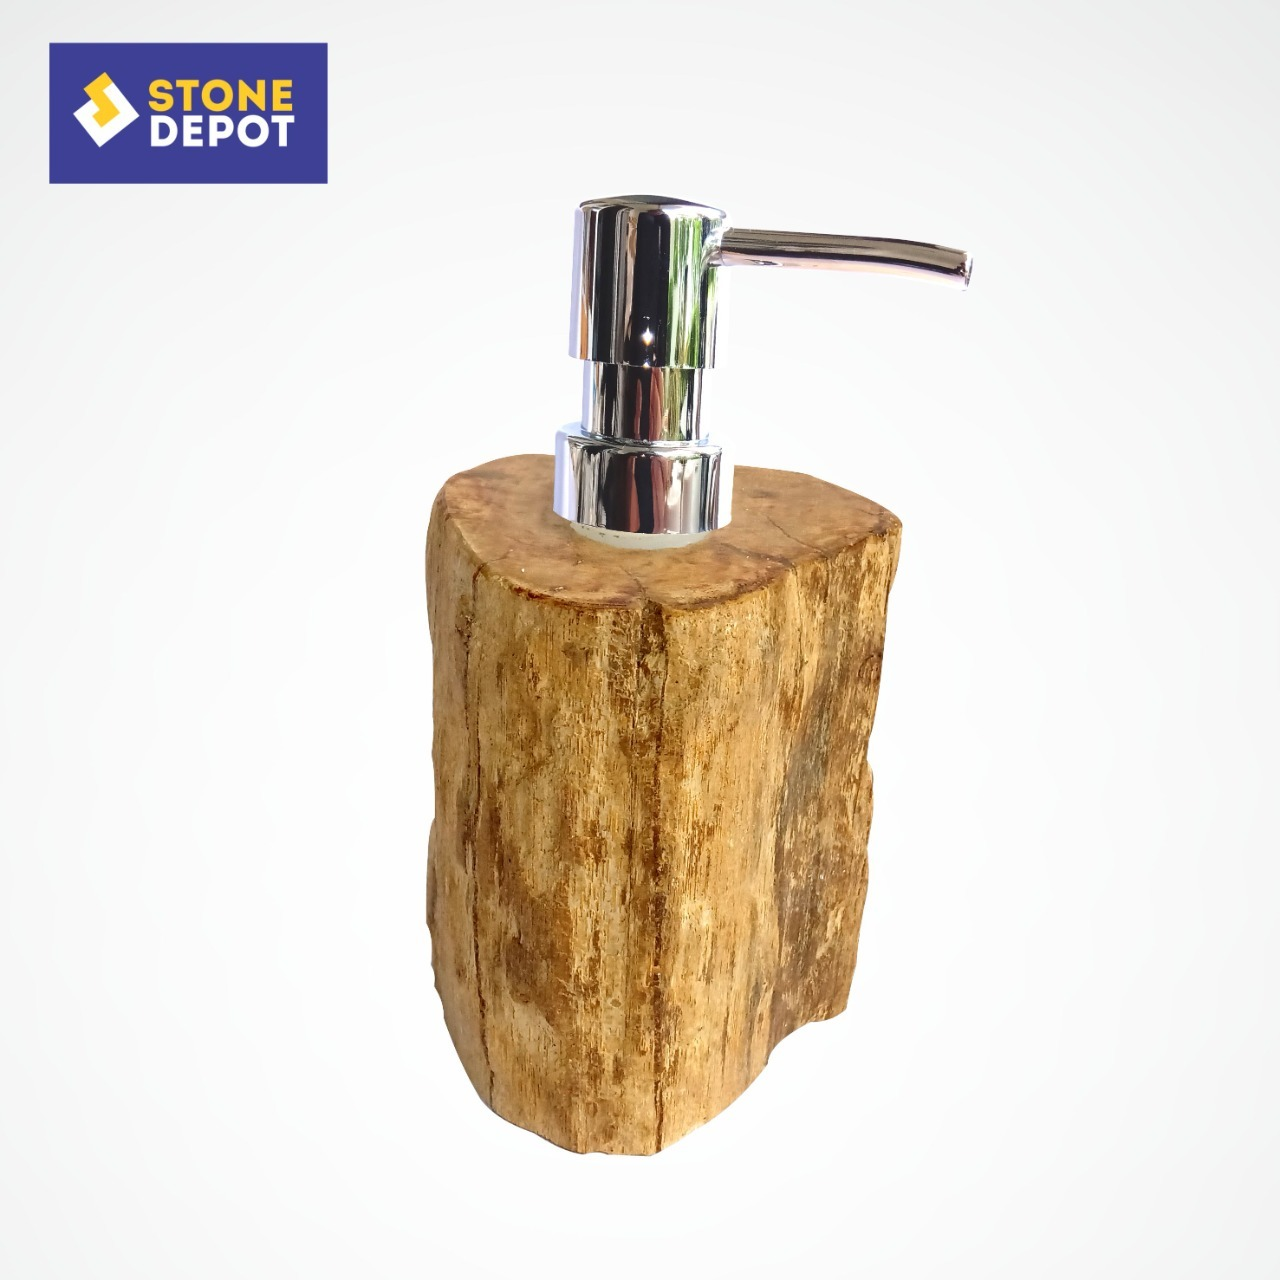 Bali Petrified Wood Bathroom Soap Dispenser